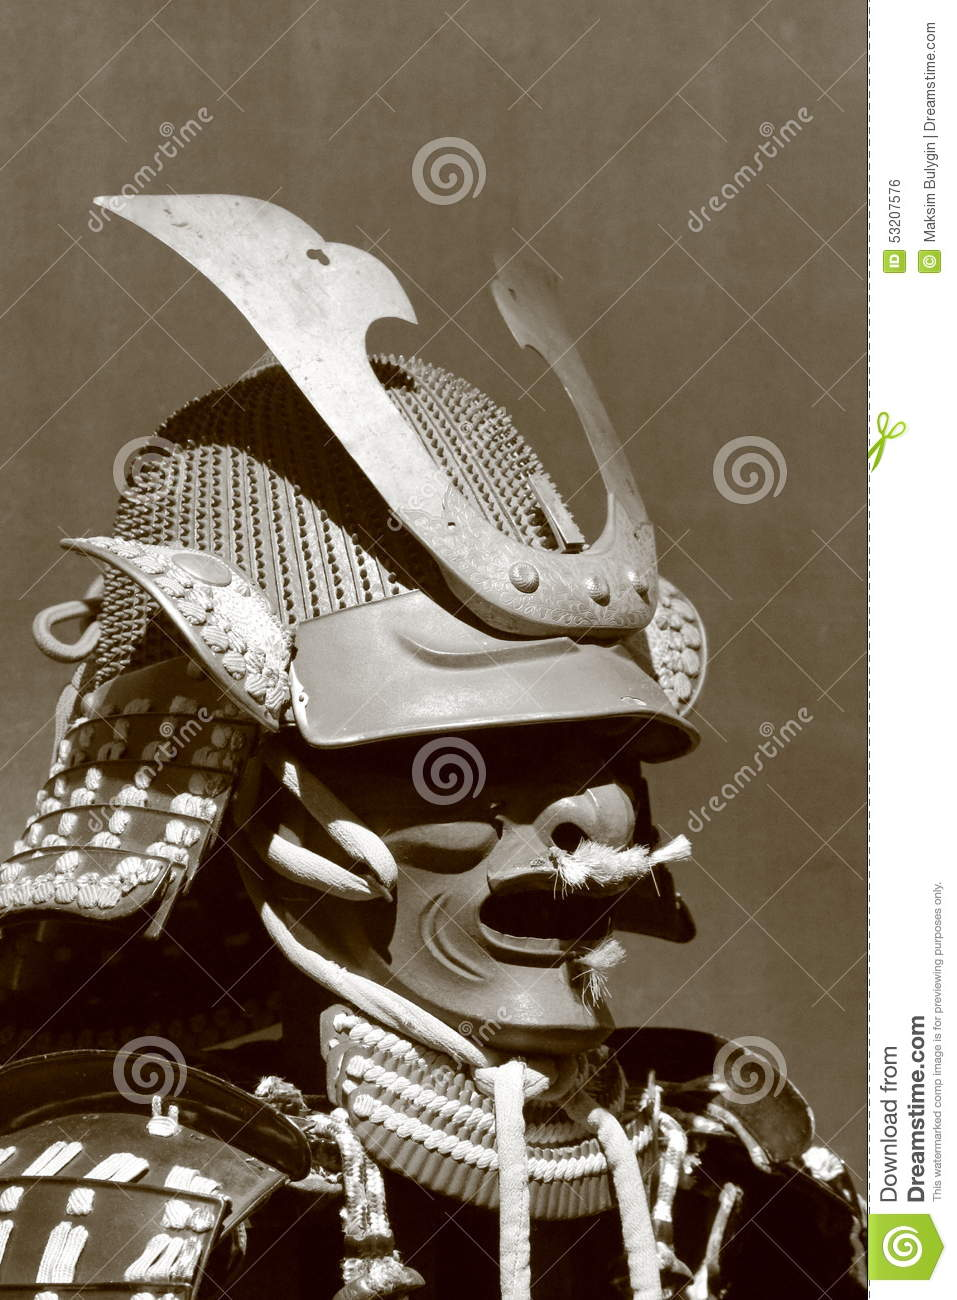 Samurai Armor Stock Photo Image Of Helmet Mask Mempo